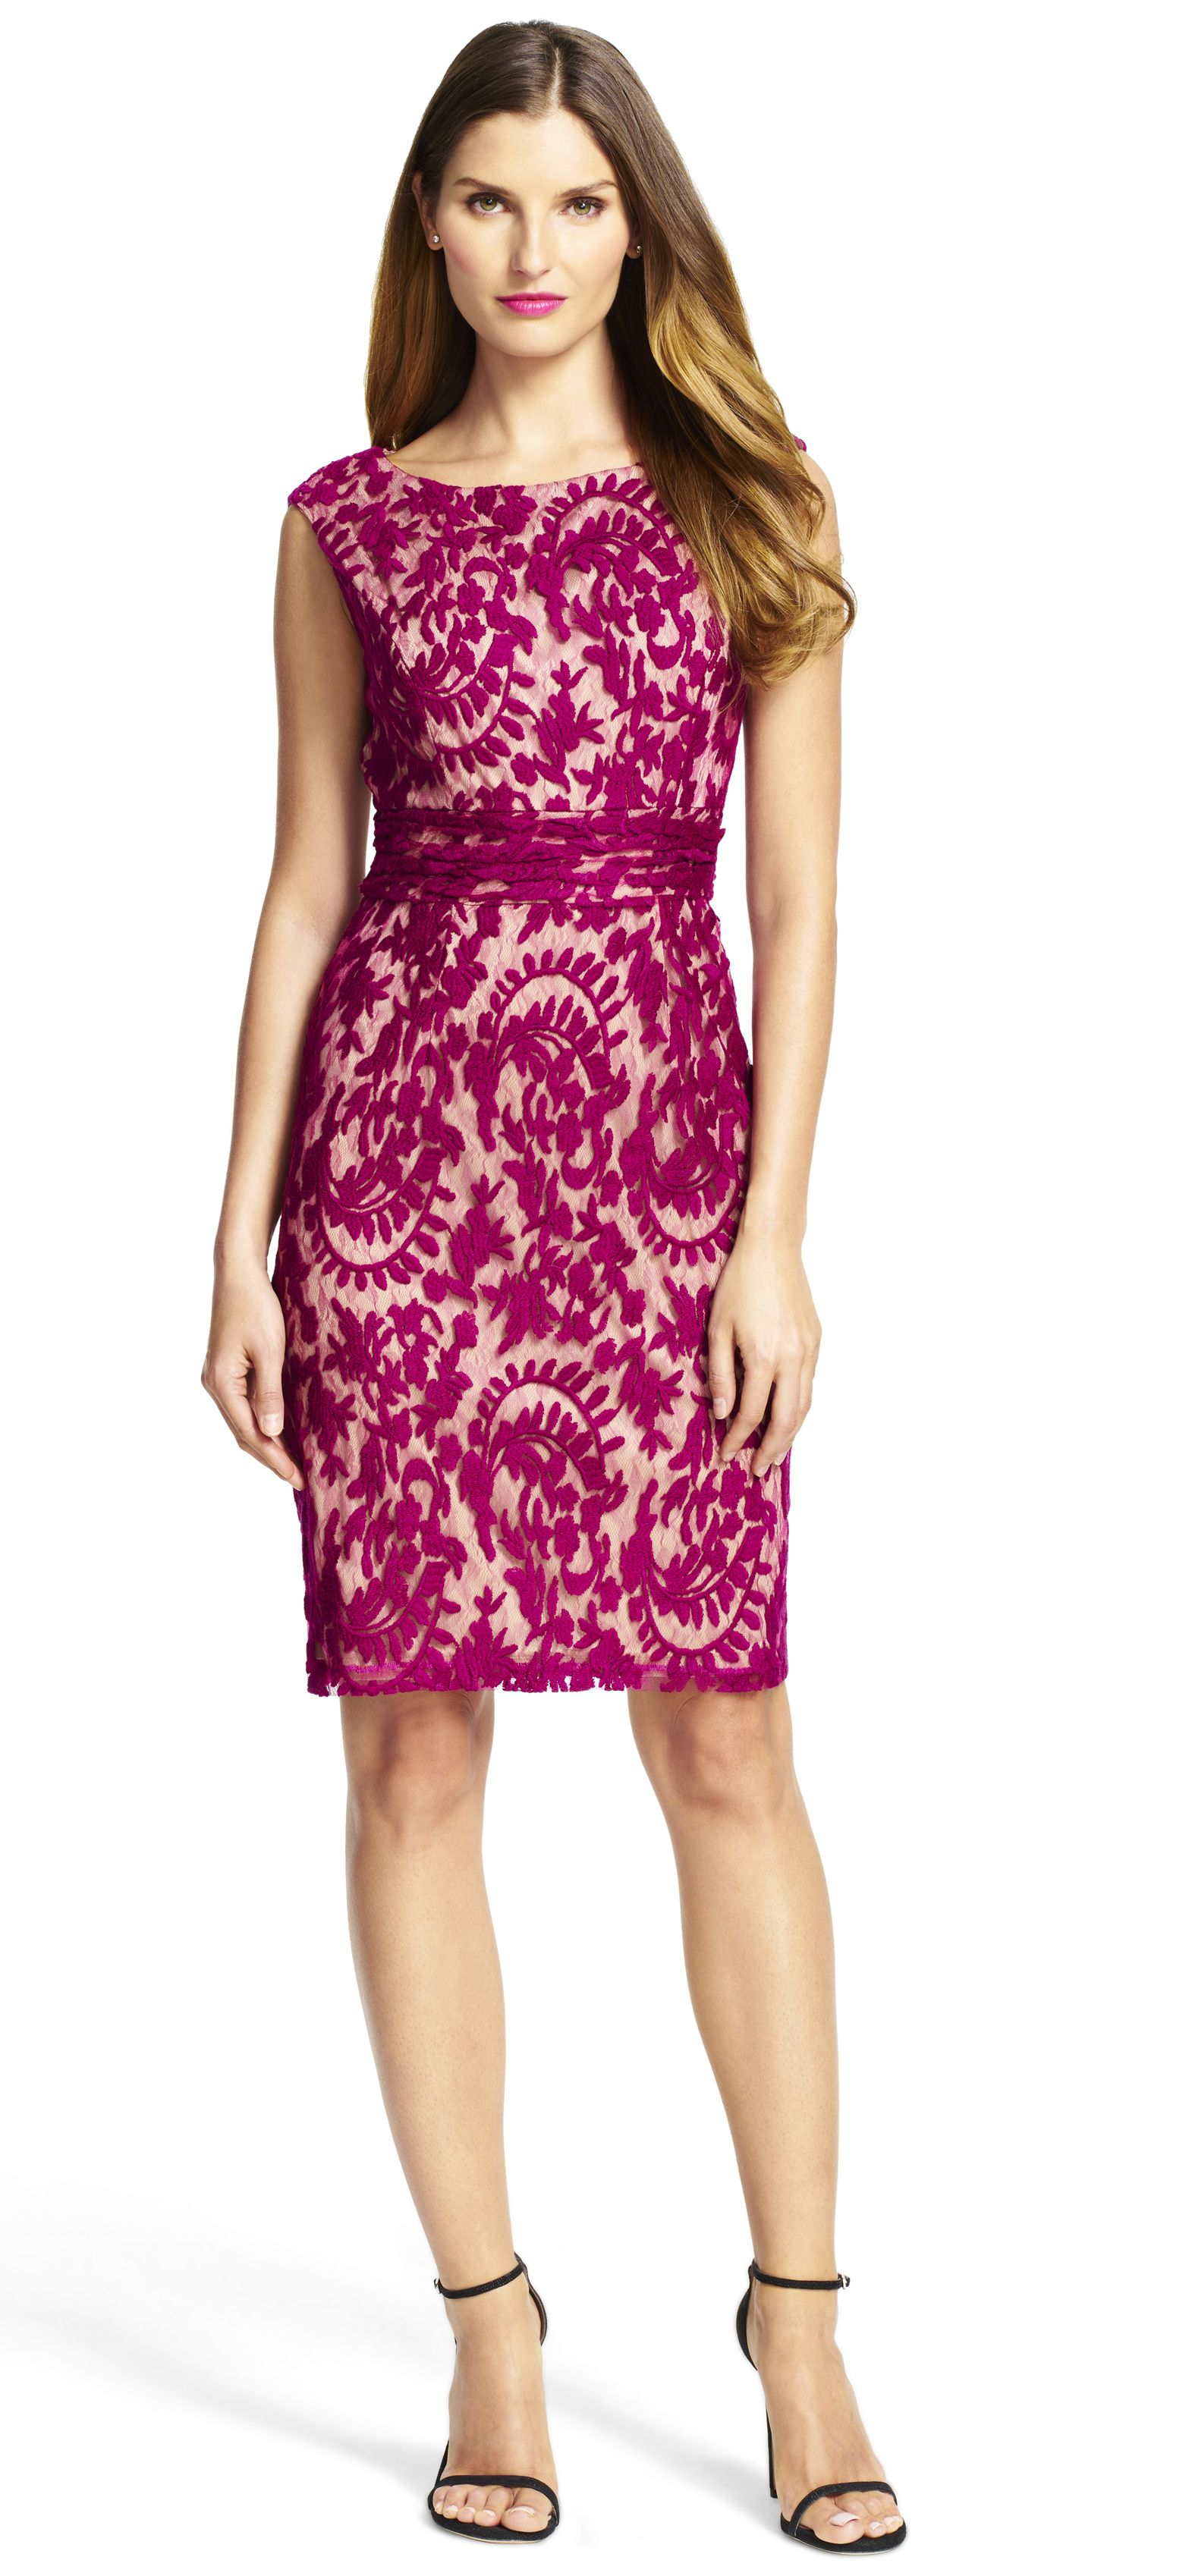 Adrianna Papell-Lace Sheath Dress with Nude Lining | Cute dresses ...